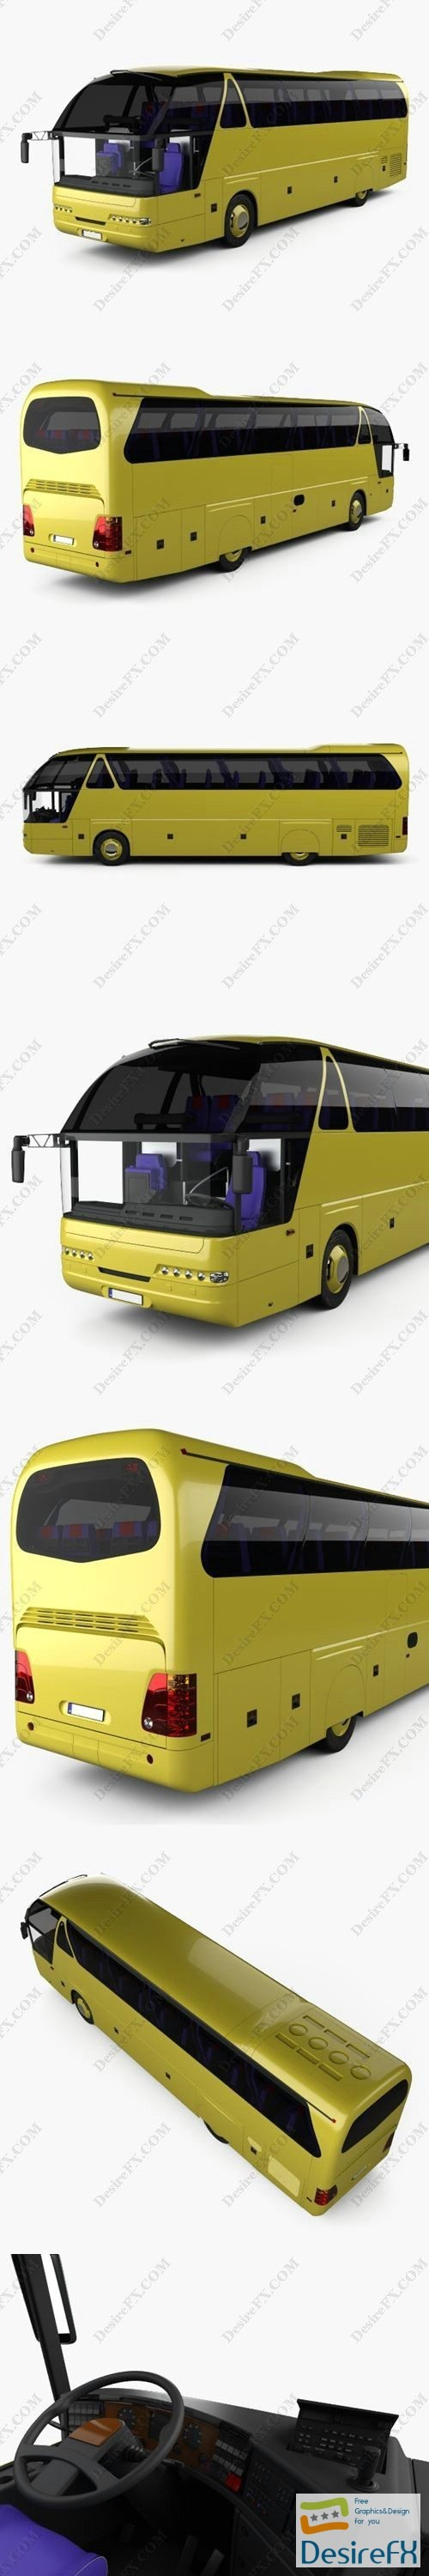 3d-models - Neoplan Starliner N 516 SHD Bus with HQinterior 1995 3D Model